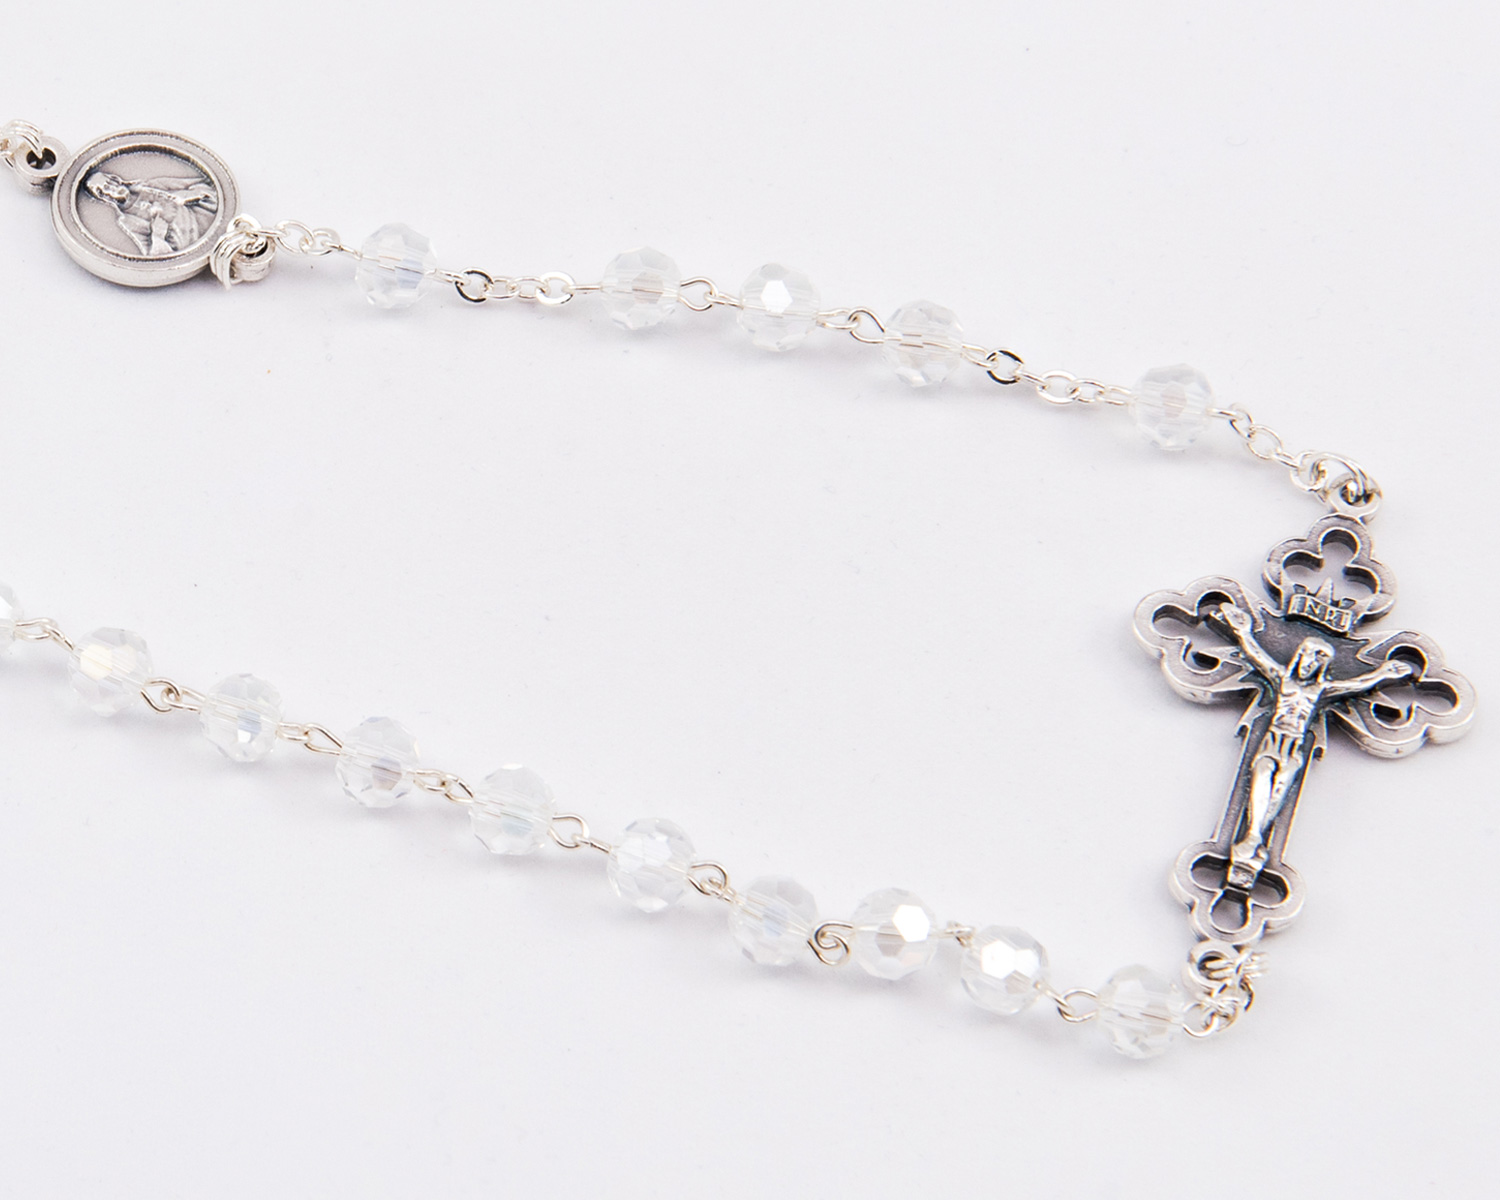 LORETOgift Transparent Crystal Kant-Tangle Rosary – 6mm beads Photo A